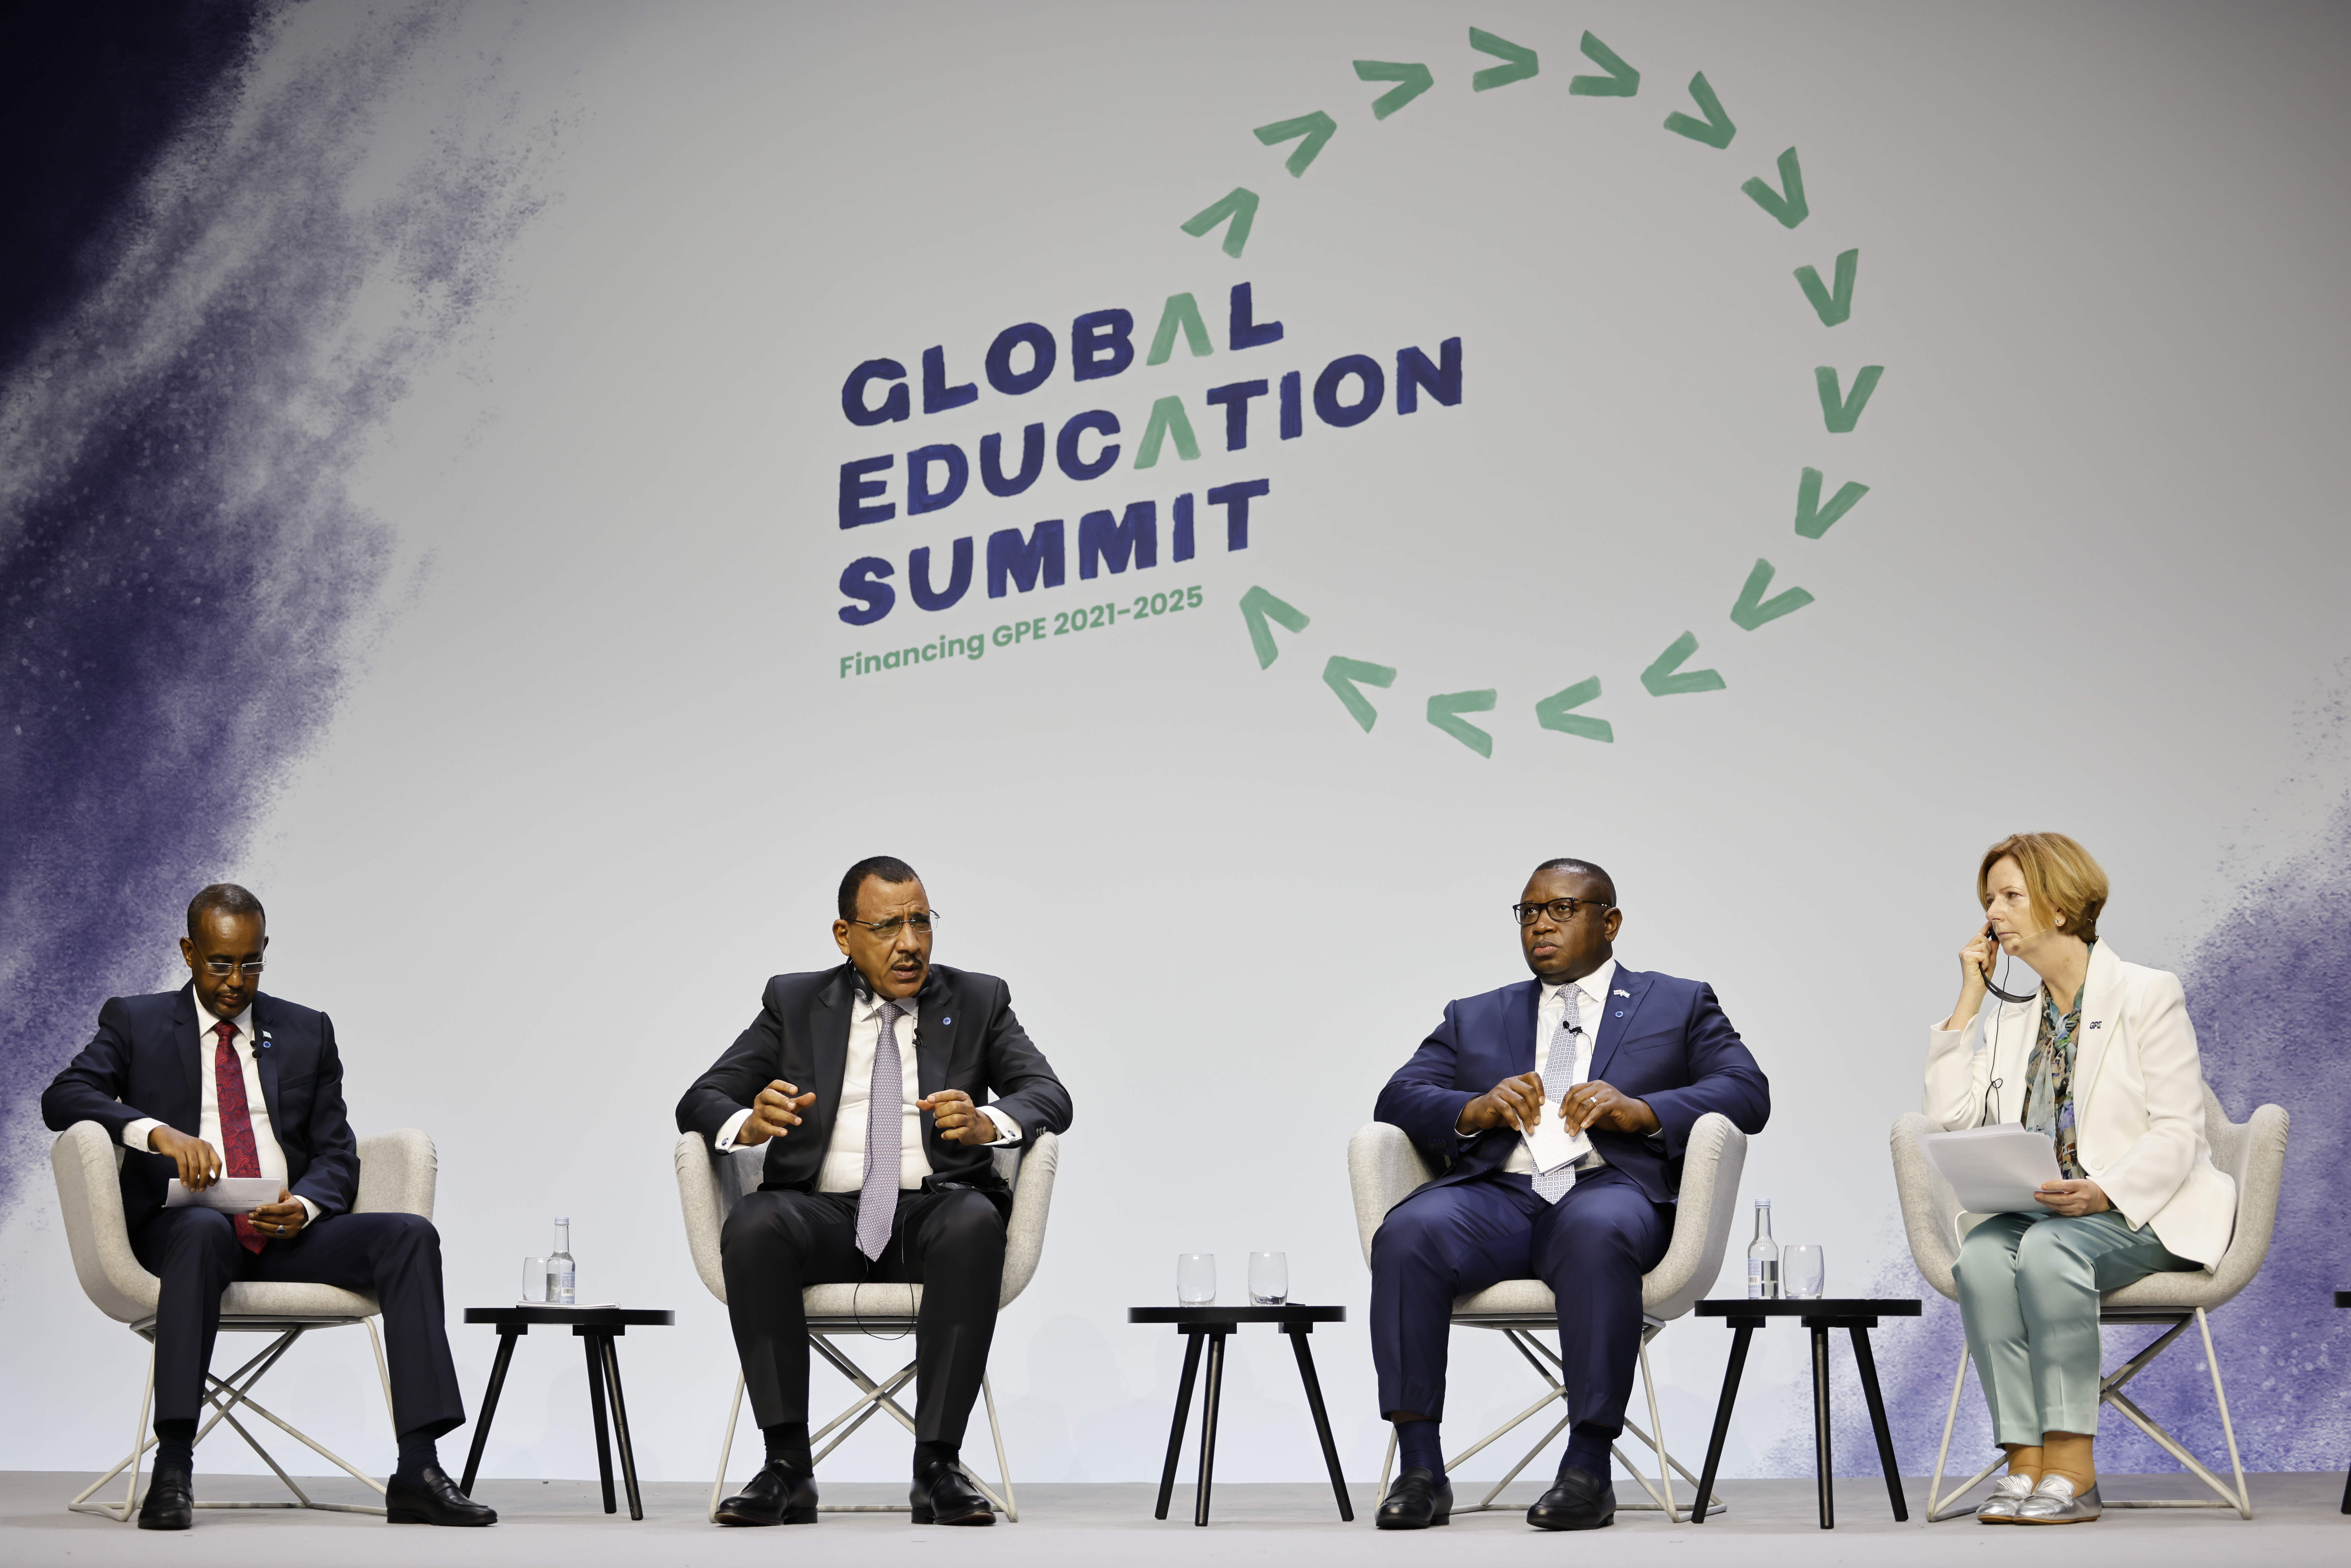 """From left, Somalia's Prime Minister Mohamed Hussein, Niger's President Mohamed Bazoum and Sierra Leone's President Julius Maada Bio take part in a session entitled """"The Power of Education"""" on the second day of the Global Education Summit in London, Thursday, July 29, 2021 hosted by Australia's former prime minister Julia Gillard, right."""